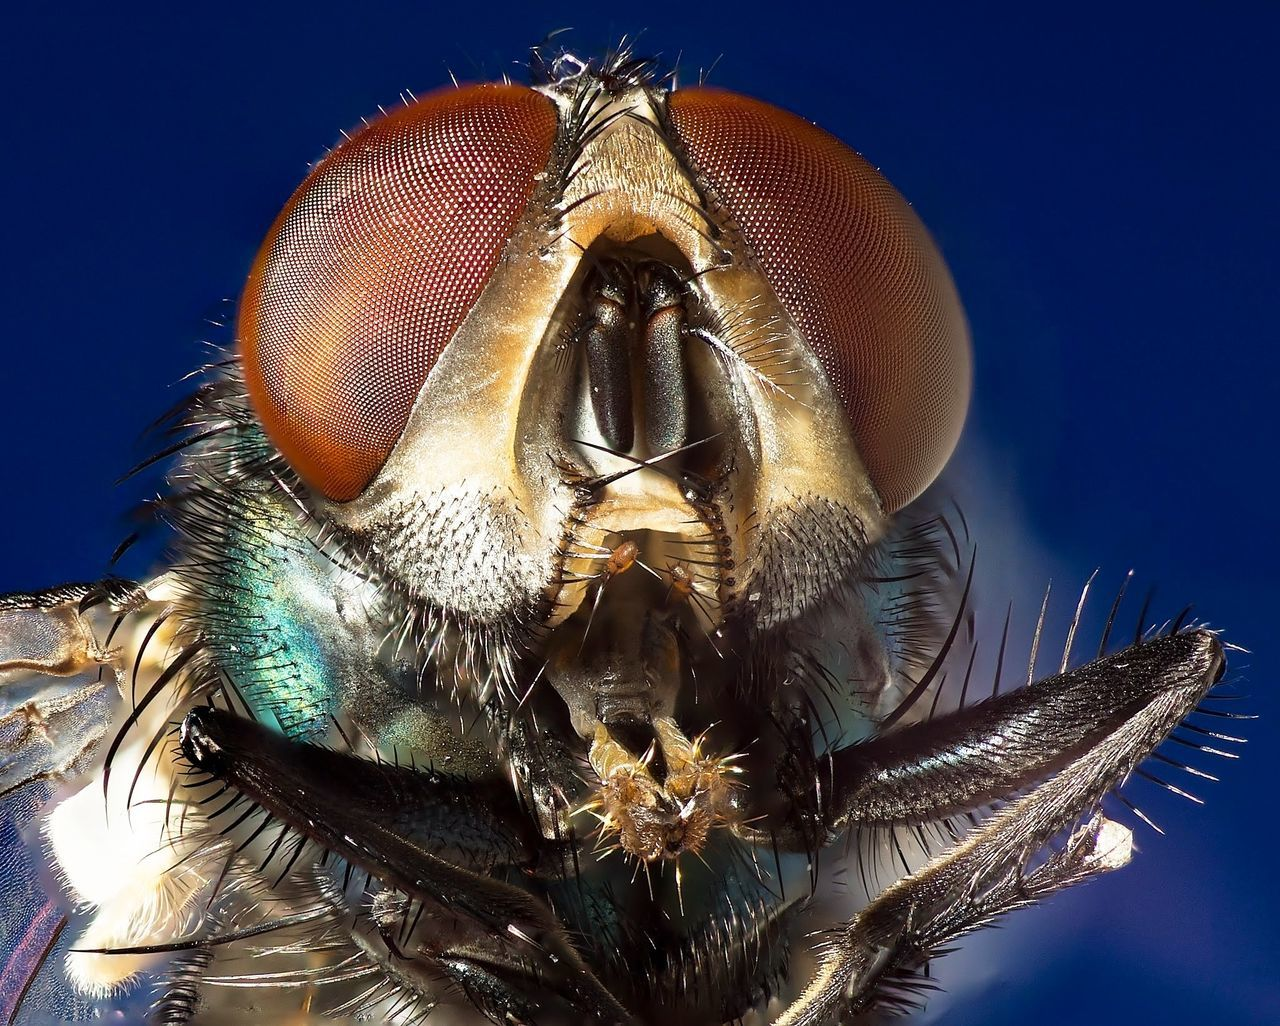 Macro Beauty of a fly.